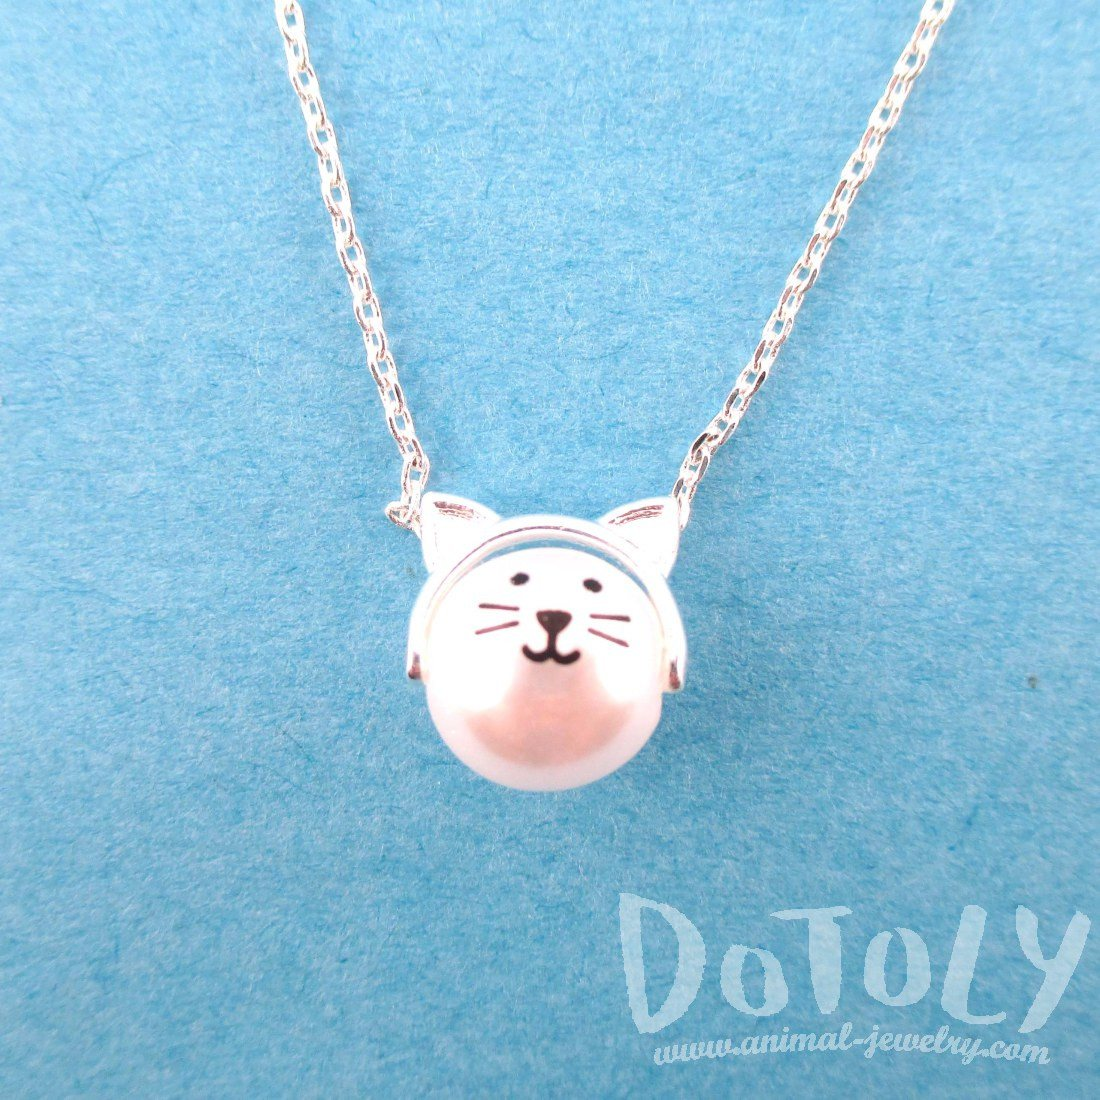 Adorable Kitty Cat Face Shaped Pearl Pendant Necklace in Silver